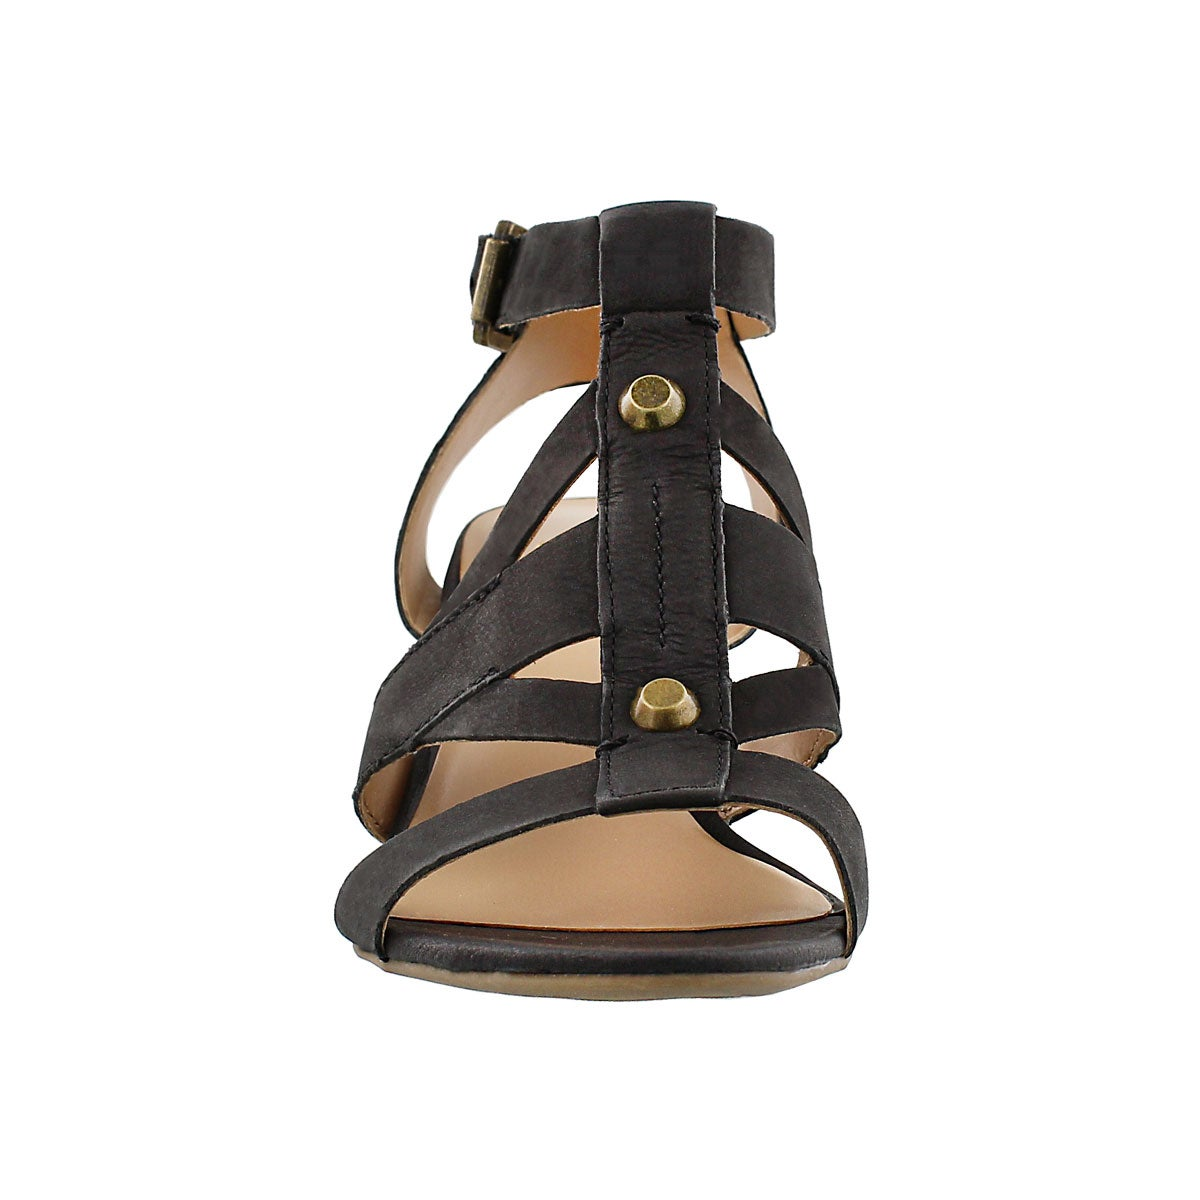 Lds Paloma black dress sandal